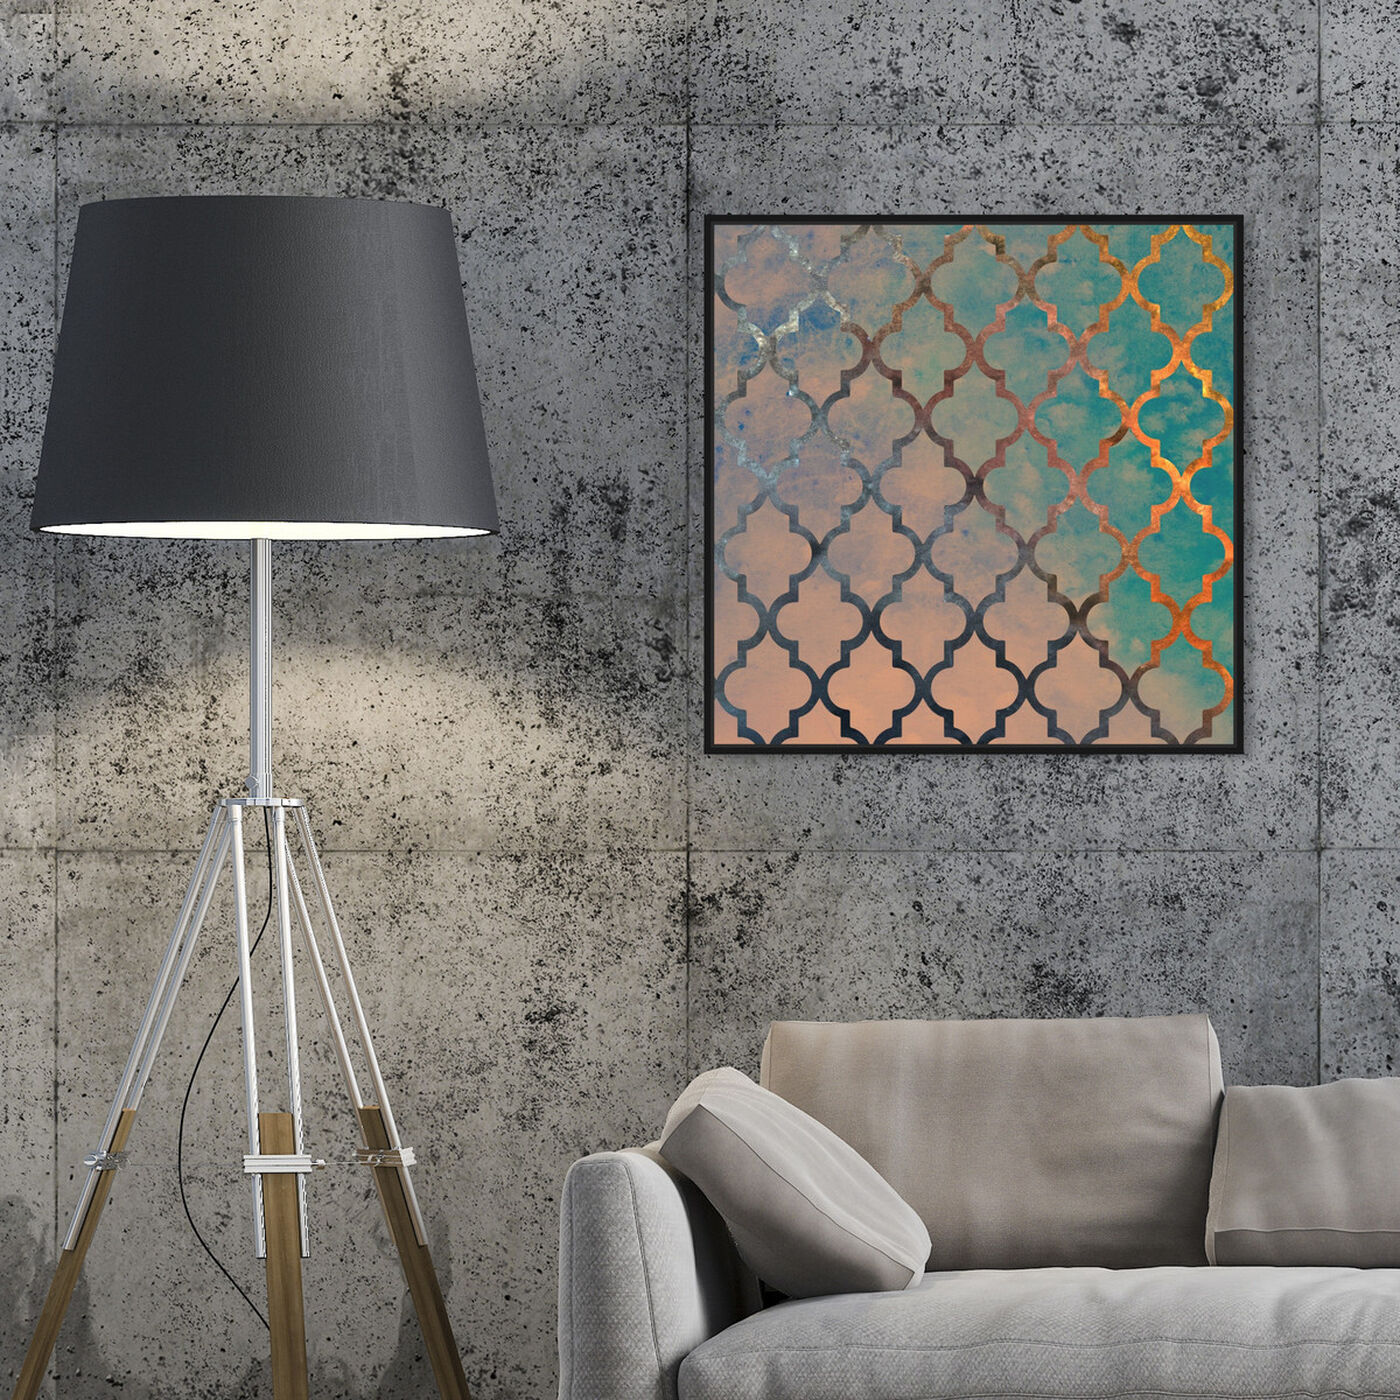 Hanging view of Amour Arabesque featuring abstract and patterns art.